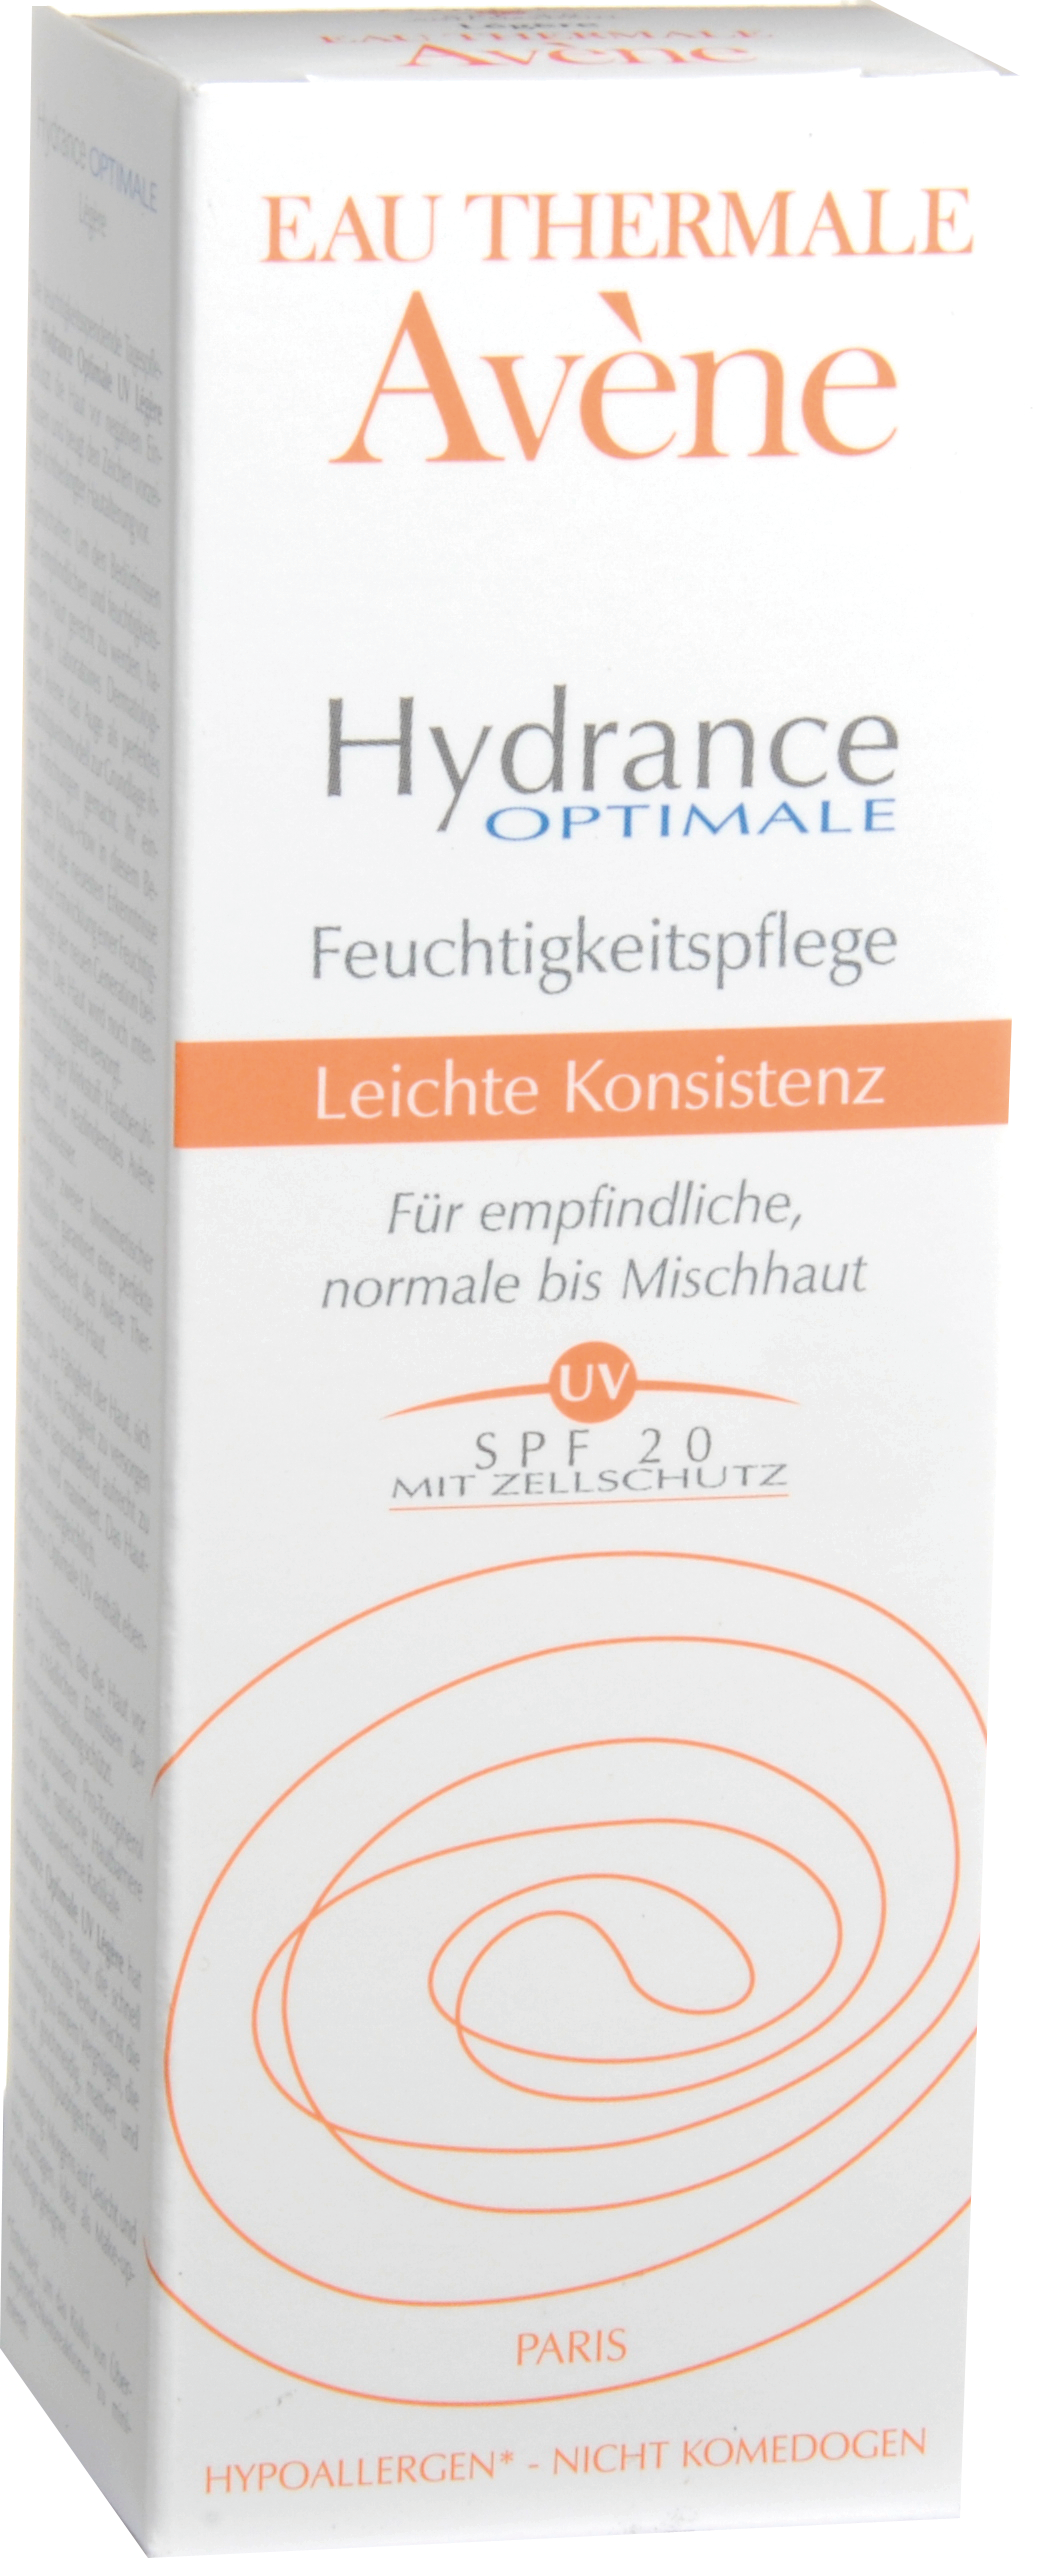 Avene Hydrance Optimale UV legere